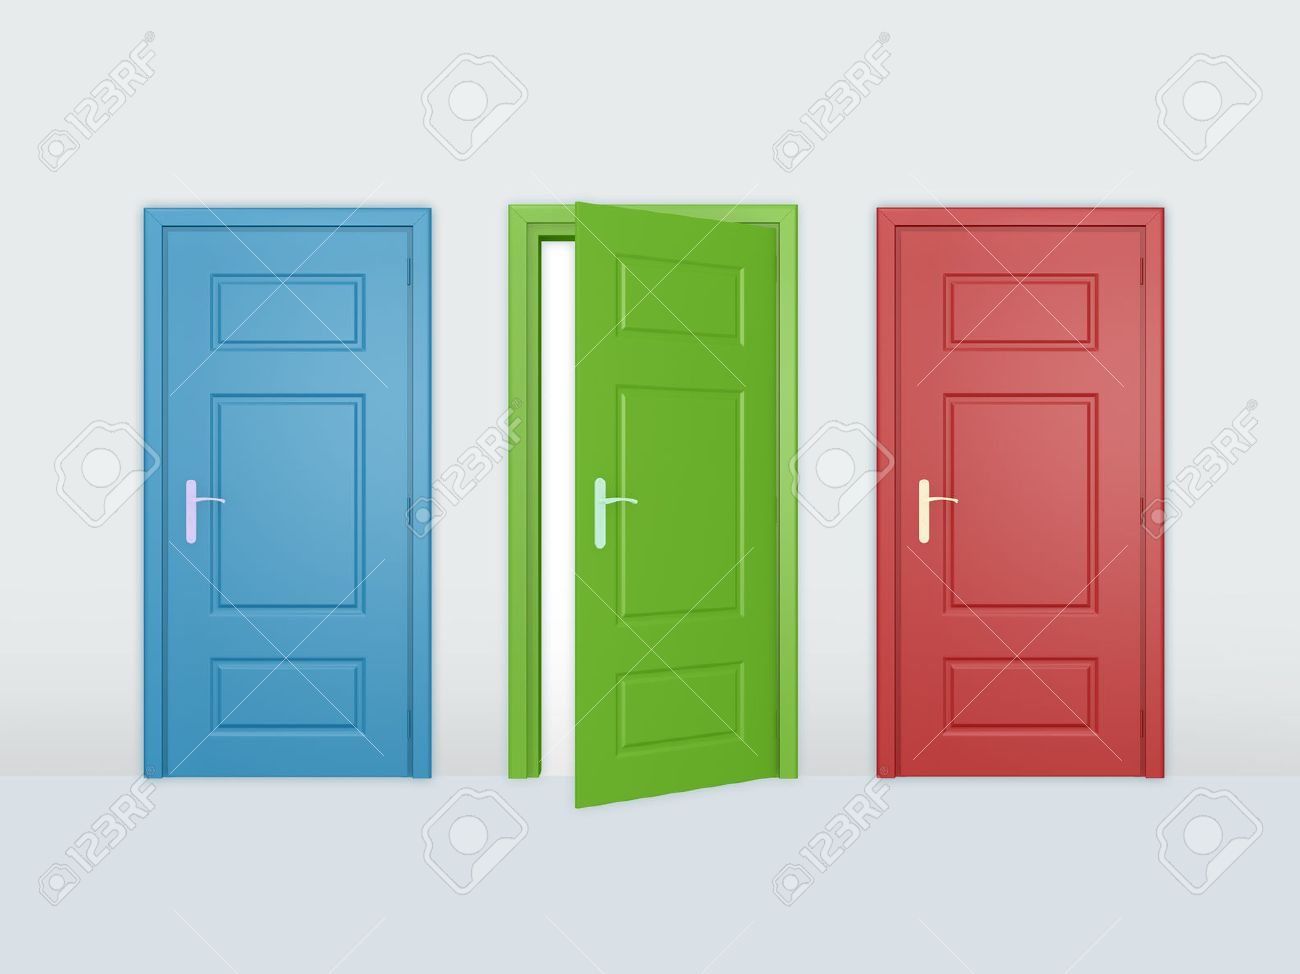 One Open Door And Two Closed Doors Stock Photo Picture And Royalty